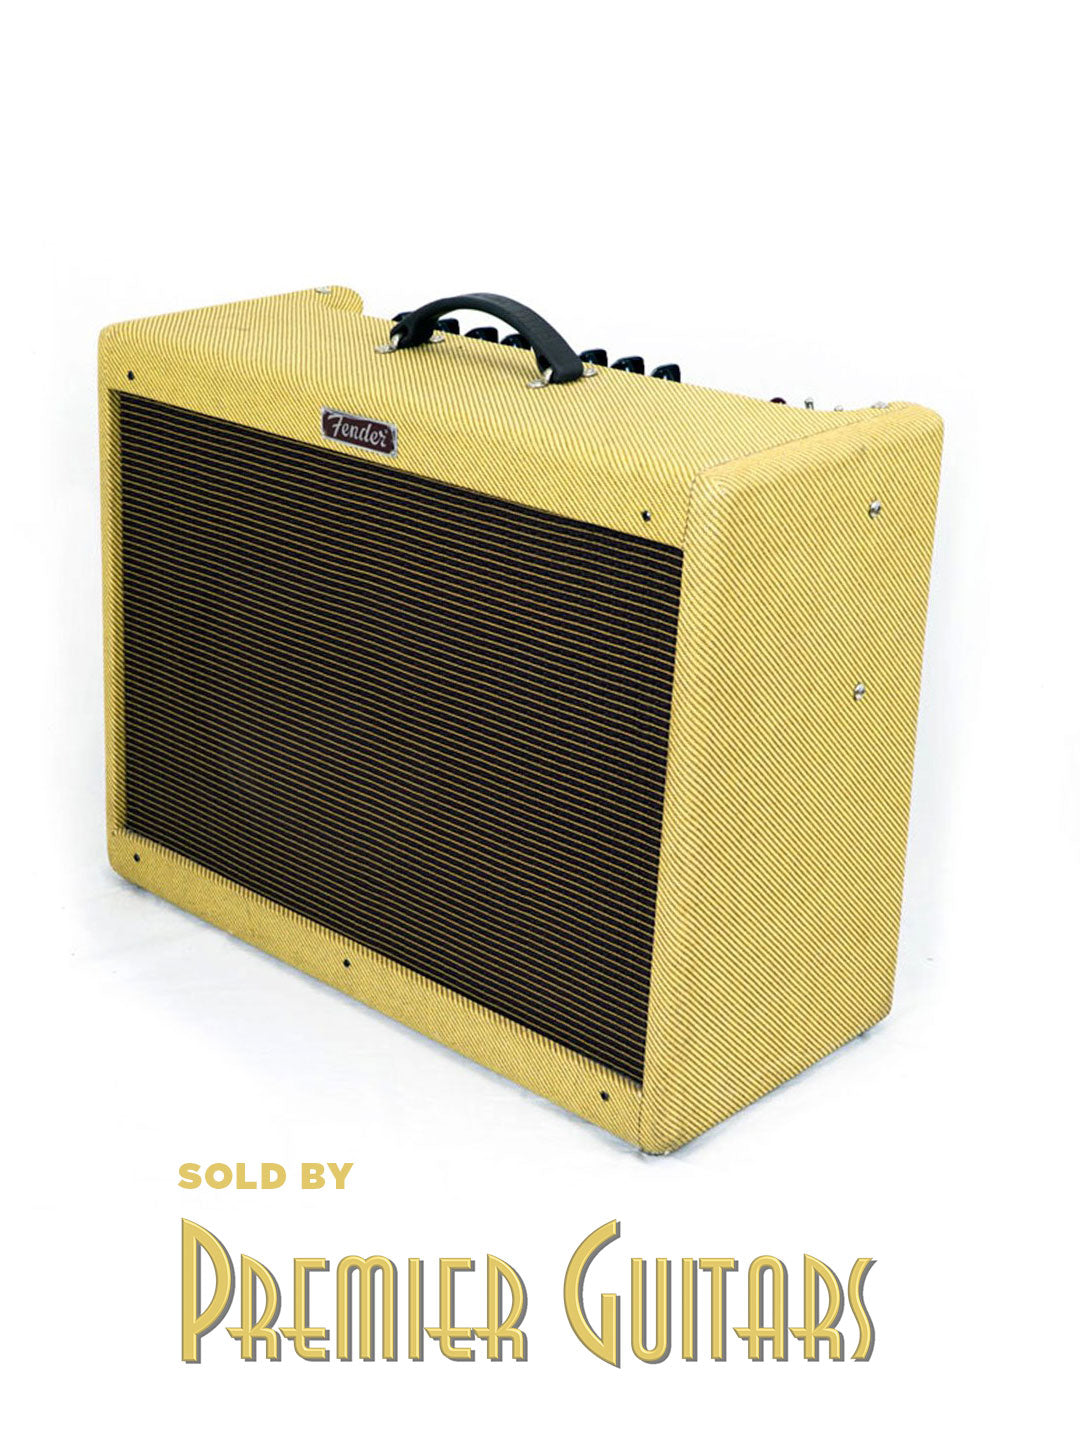 SOLD  Fender Blues Deluxe Combo Amp - Mexico 2008 - $895.00